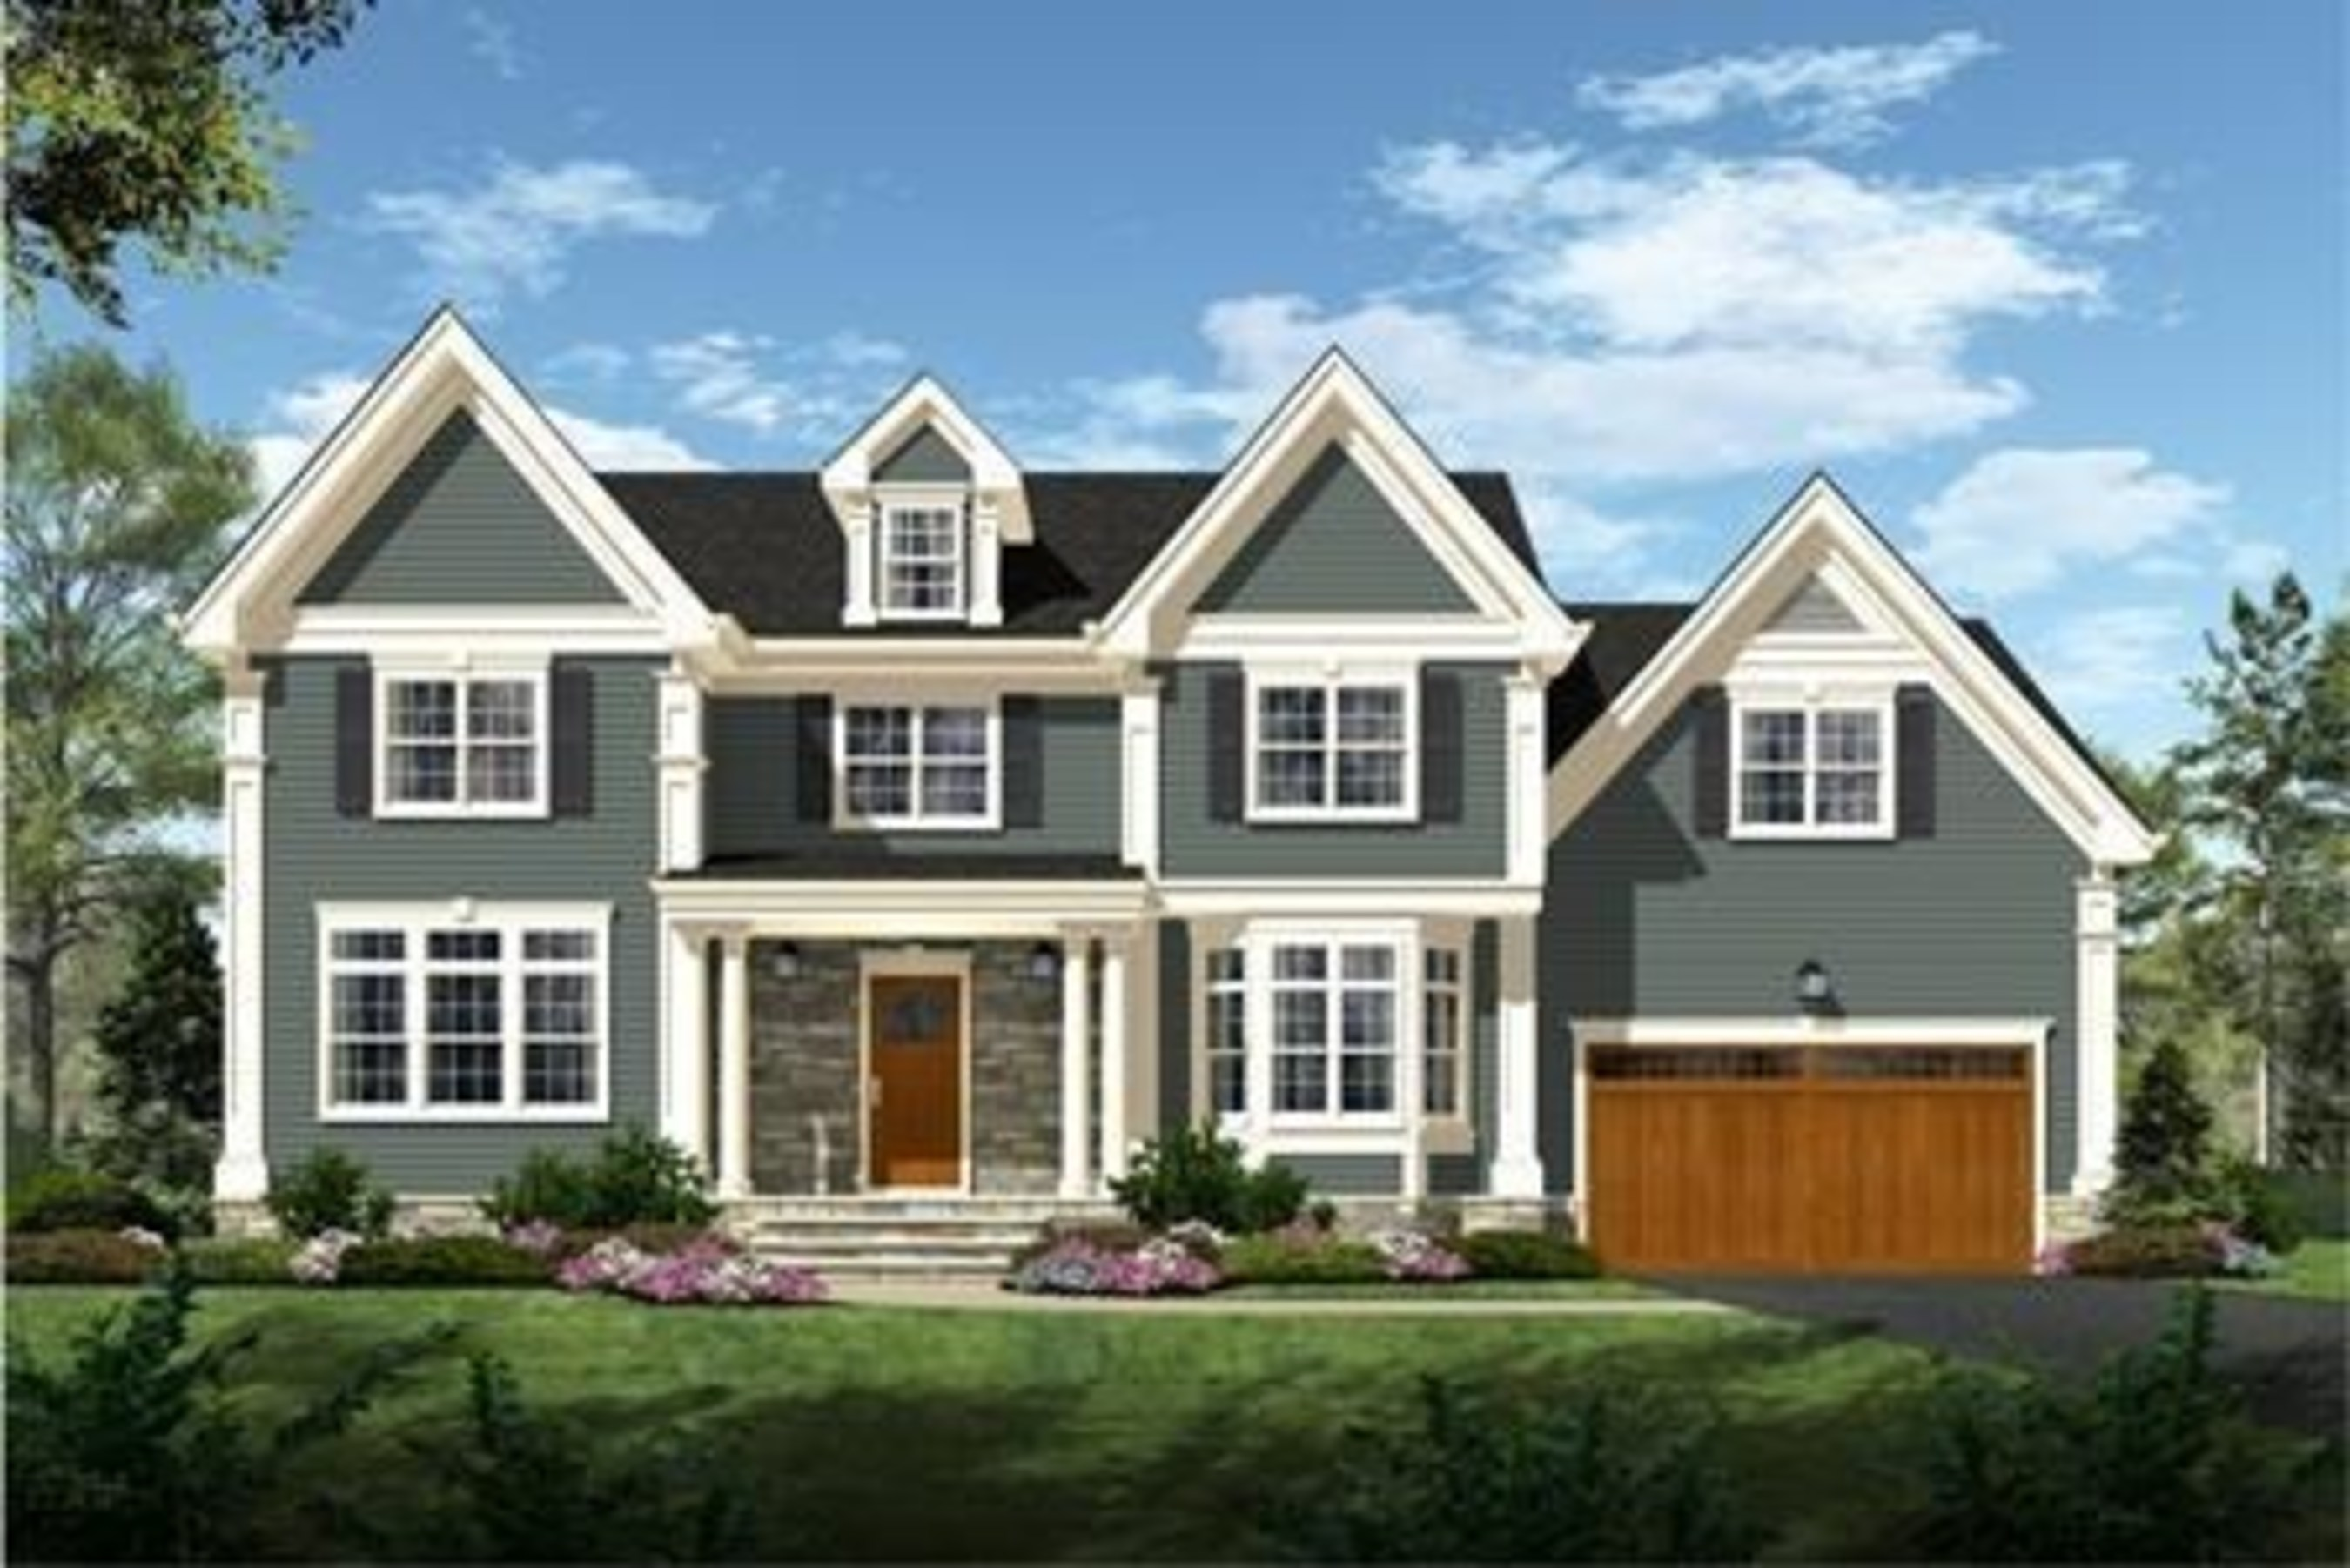 Coldwell Banker New Homes Announces Gialluisi Custom Homes Sells Out New Home in Record Time -- More Underway to Meet Demand in Westfield, NJ